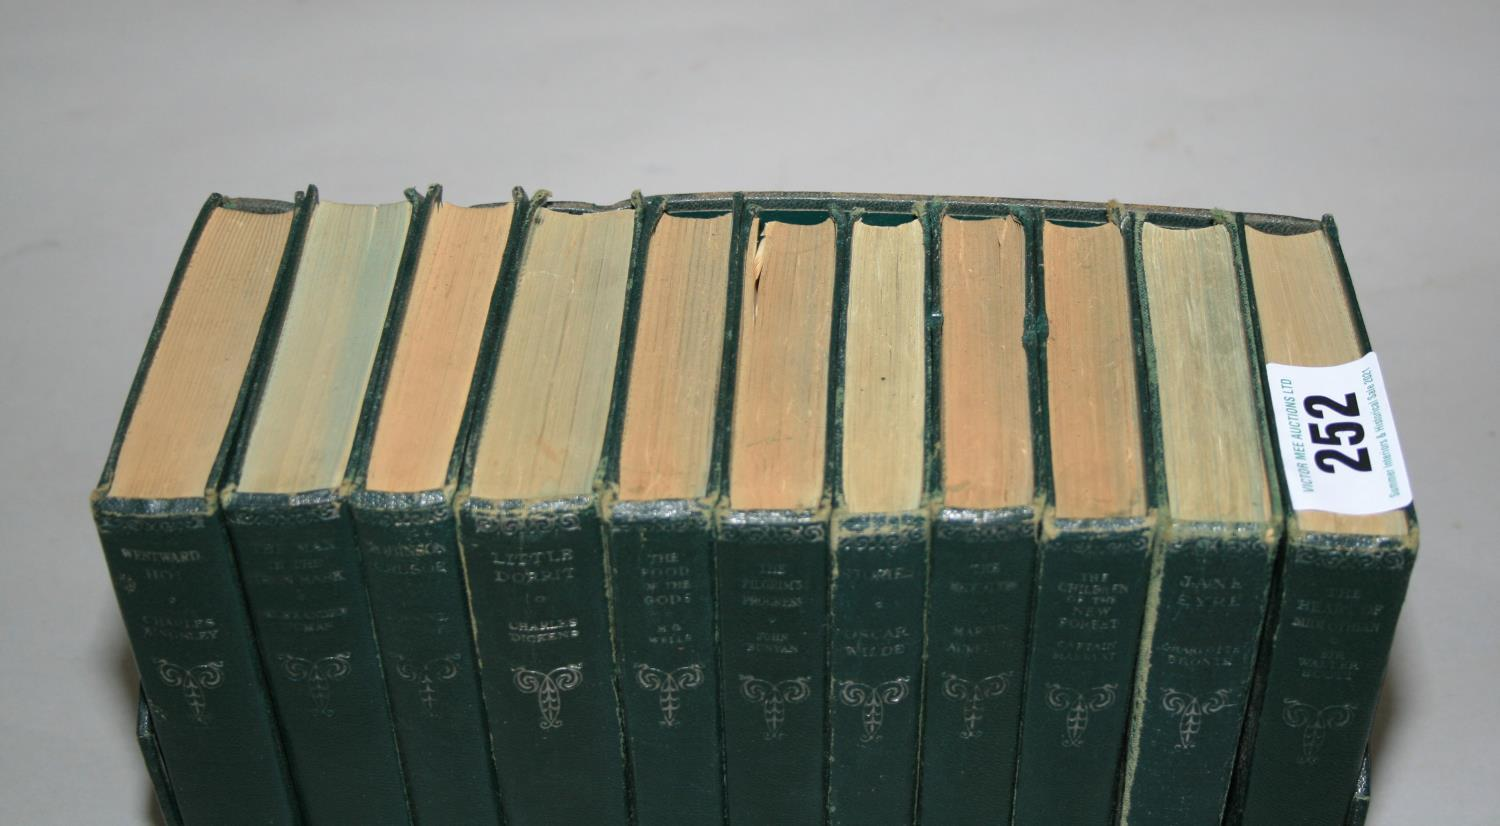 Set of bound volumes of classical novels, incl. Charles Dickens, Oscar Wilde. - Image 2 of 2